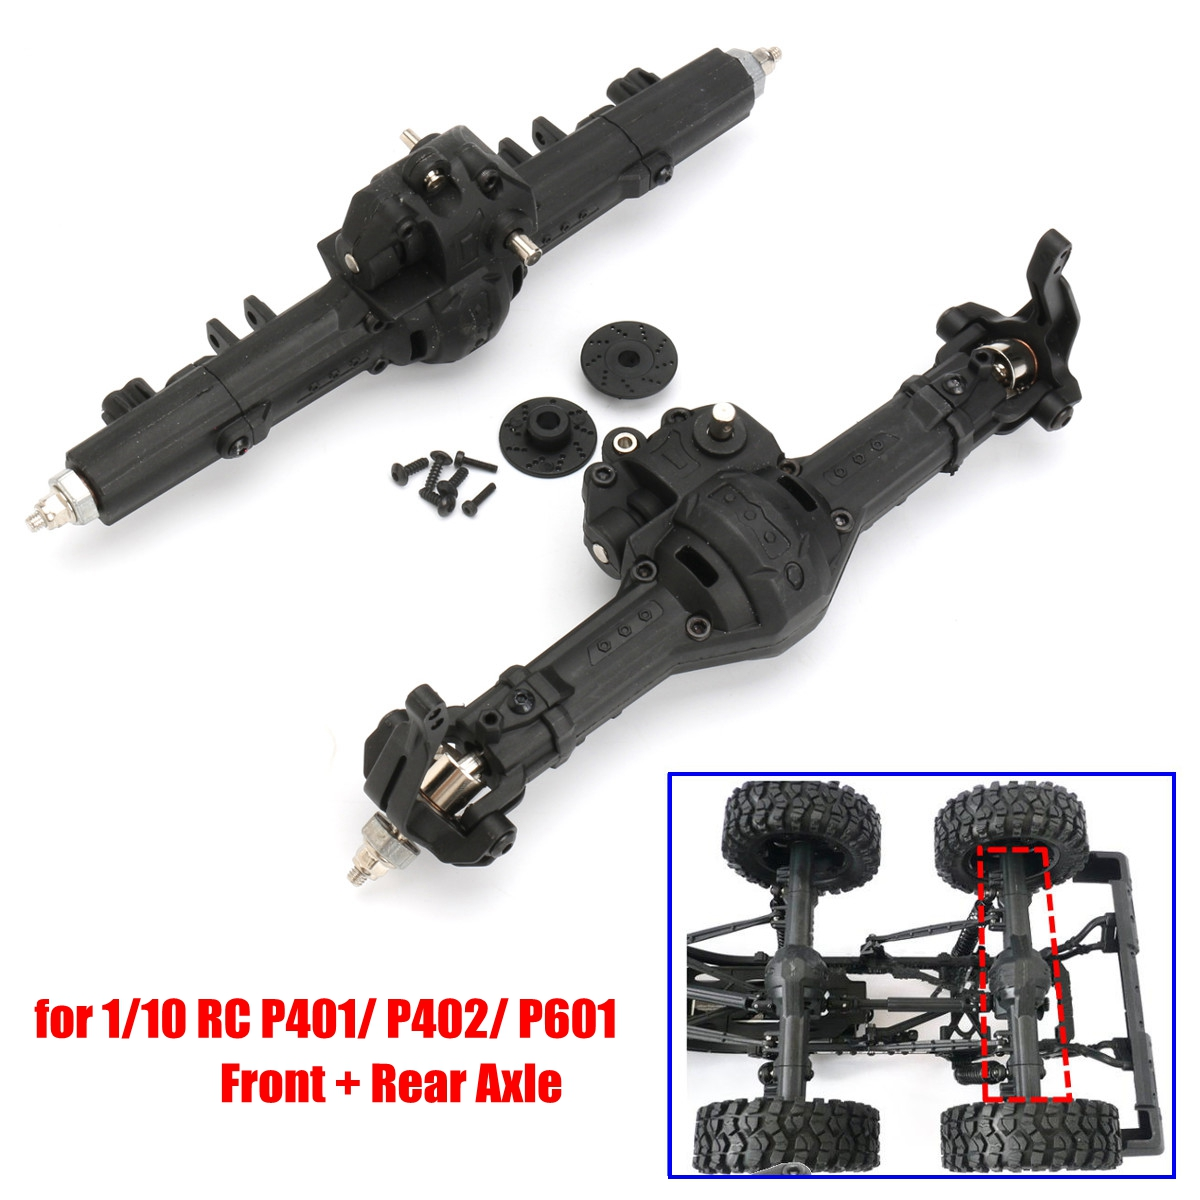 Front And Rear Gear Box Set For 1/10 RC Axle HG P401/P402/P601 Crawler Truck Car HG-BX02 1/10 HG RC Off Road Car Parts F+R Axle hg p401 p402 p601 rc car wheel drive gear h01002